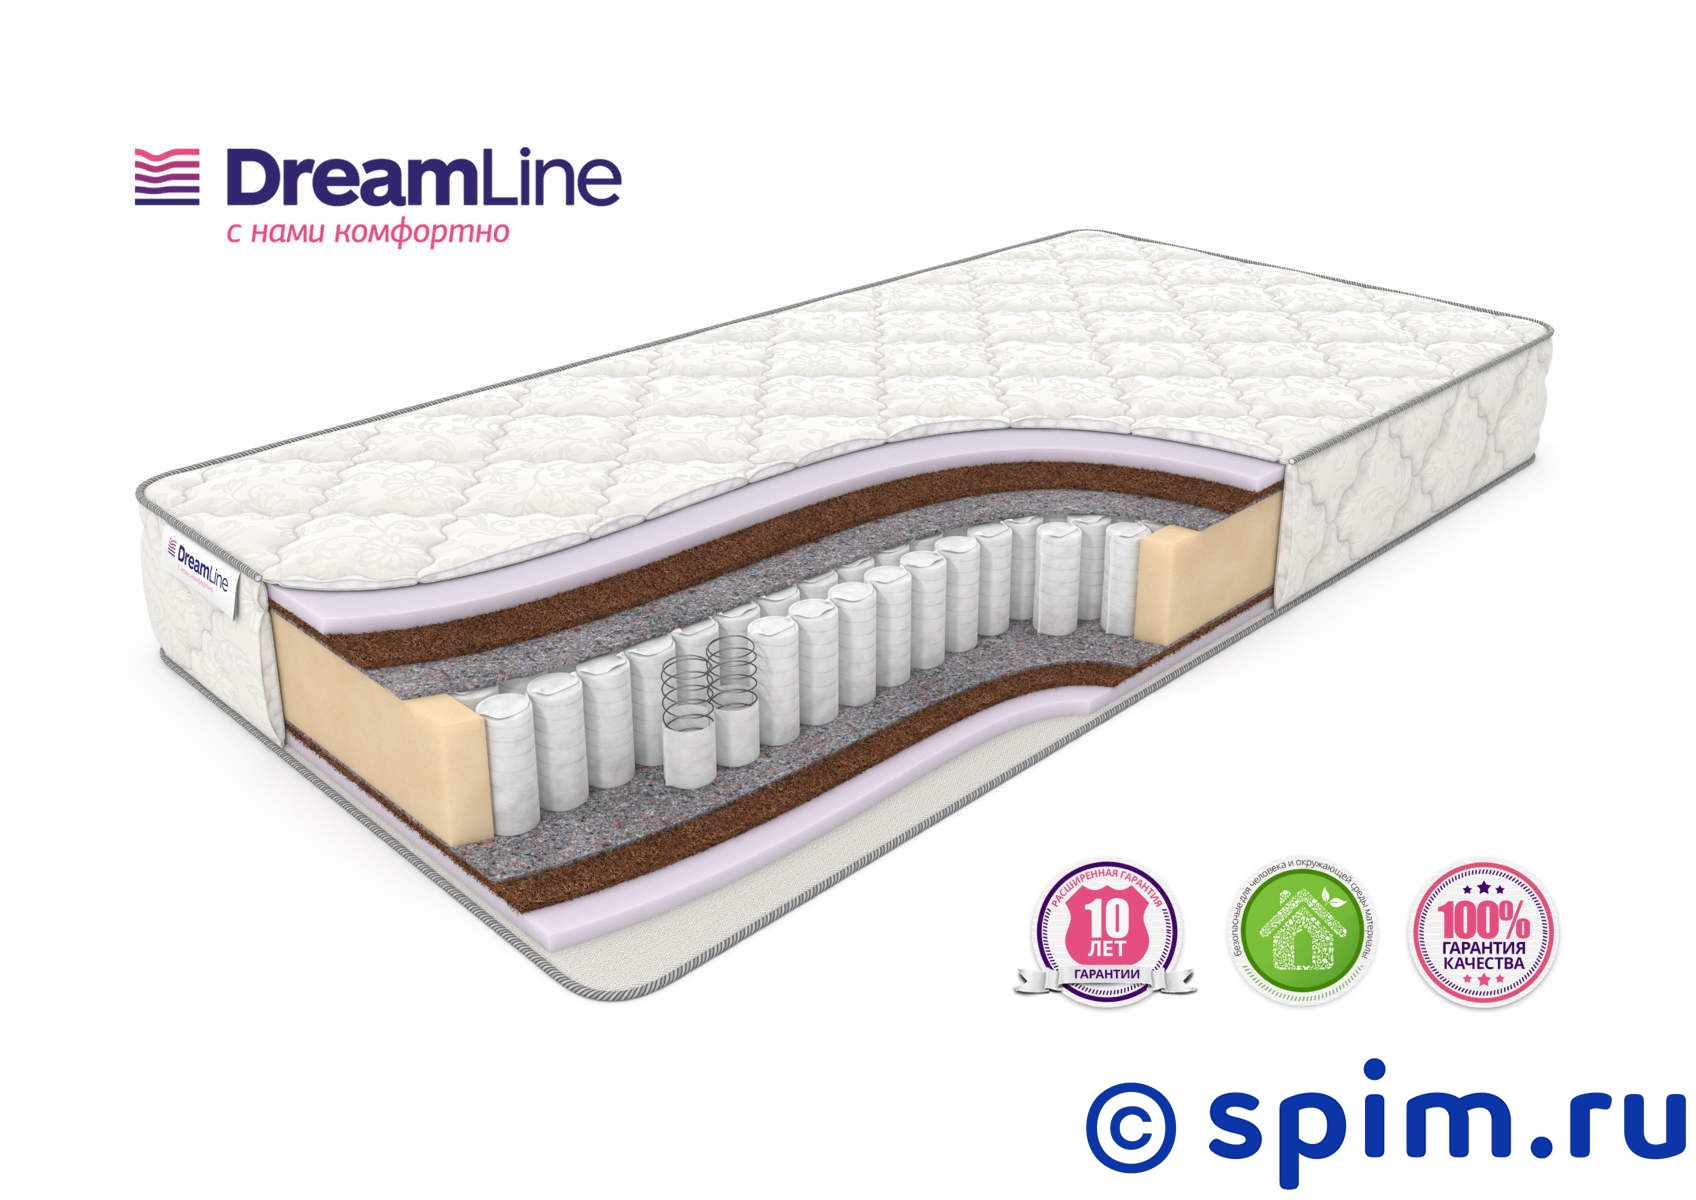 Матрас DreamLine Eco Foam Hard Tfk 150х195 см